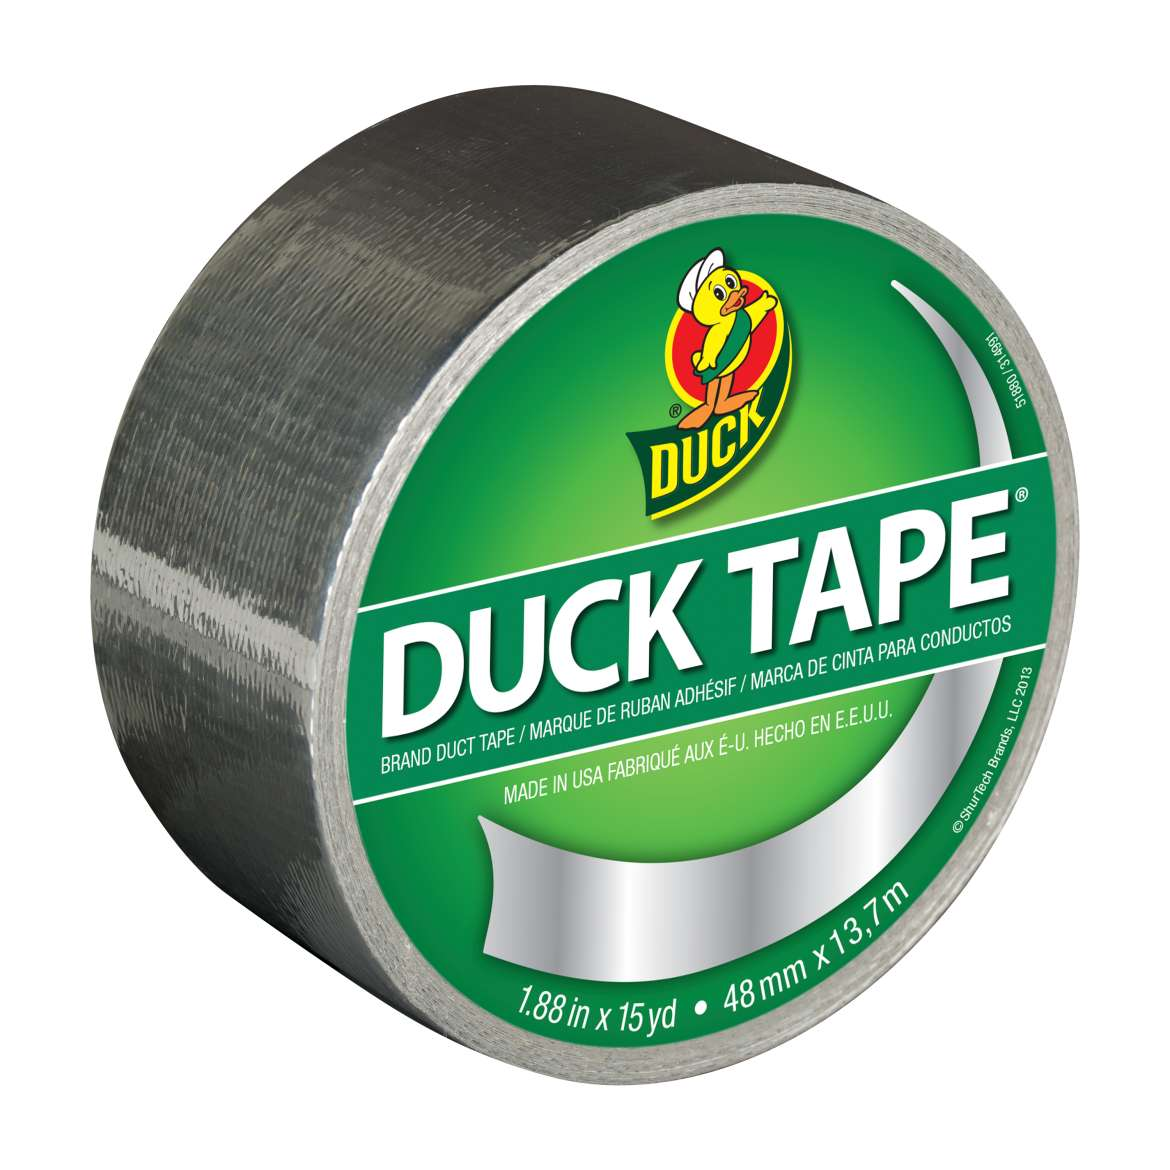 Color Duck Tape Brand Duct Tape - Chrome, 1.88 in. x 15 yd.